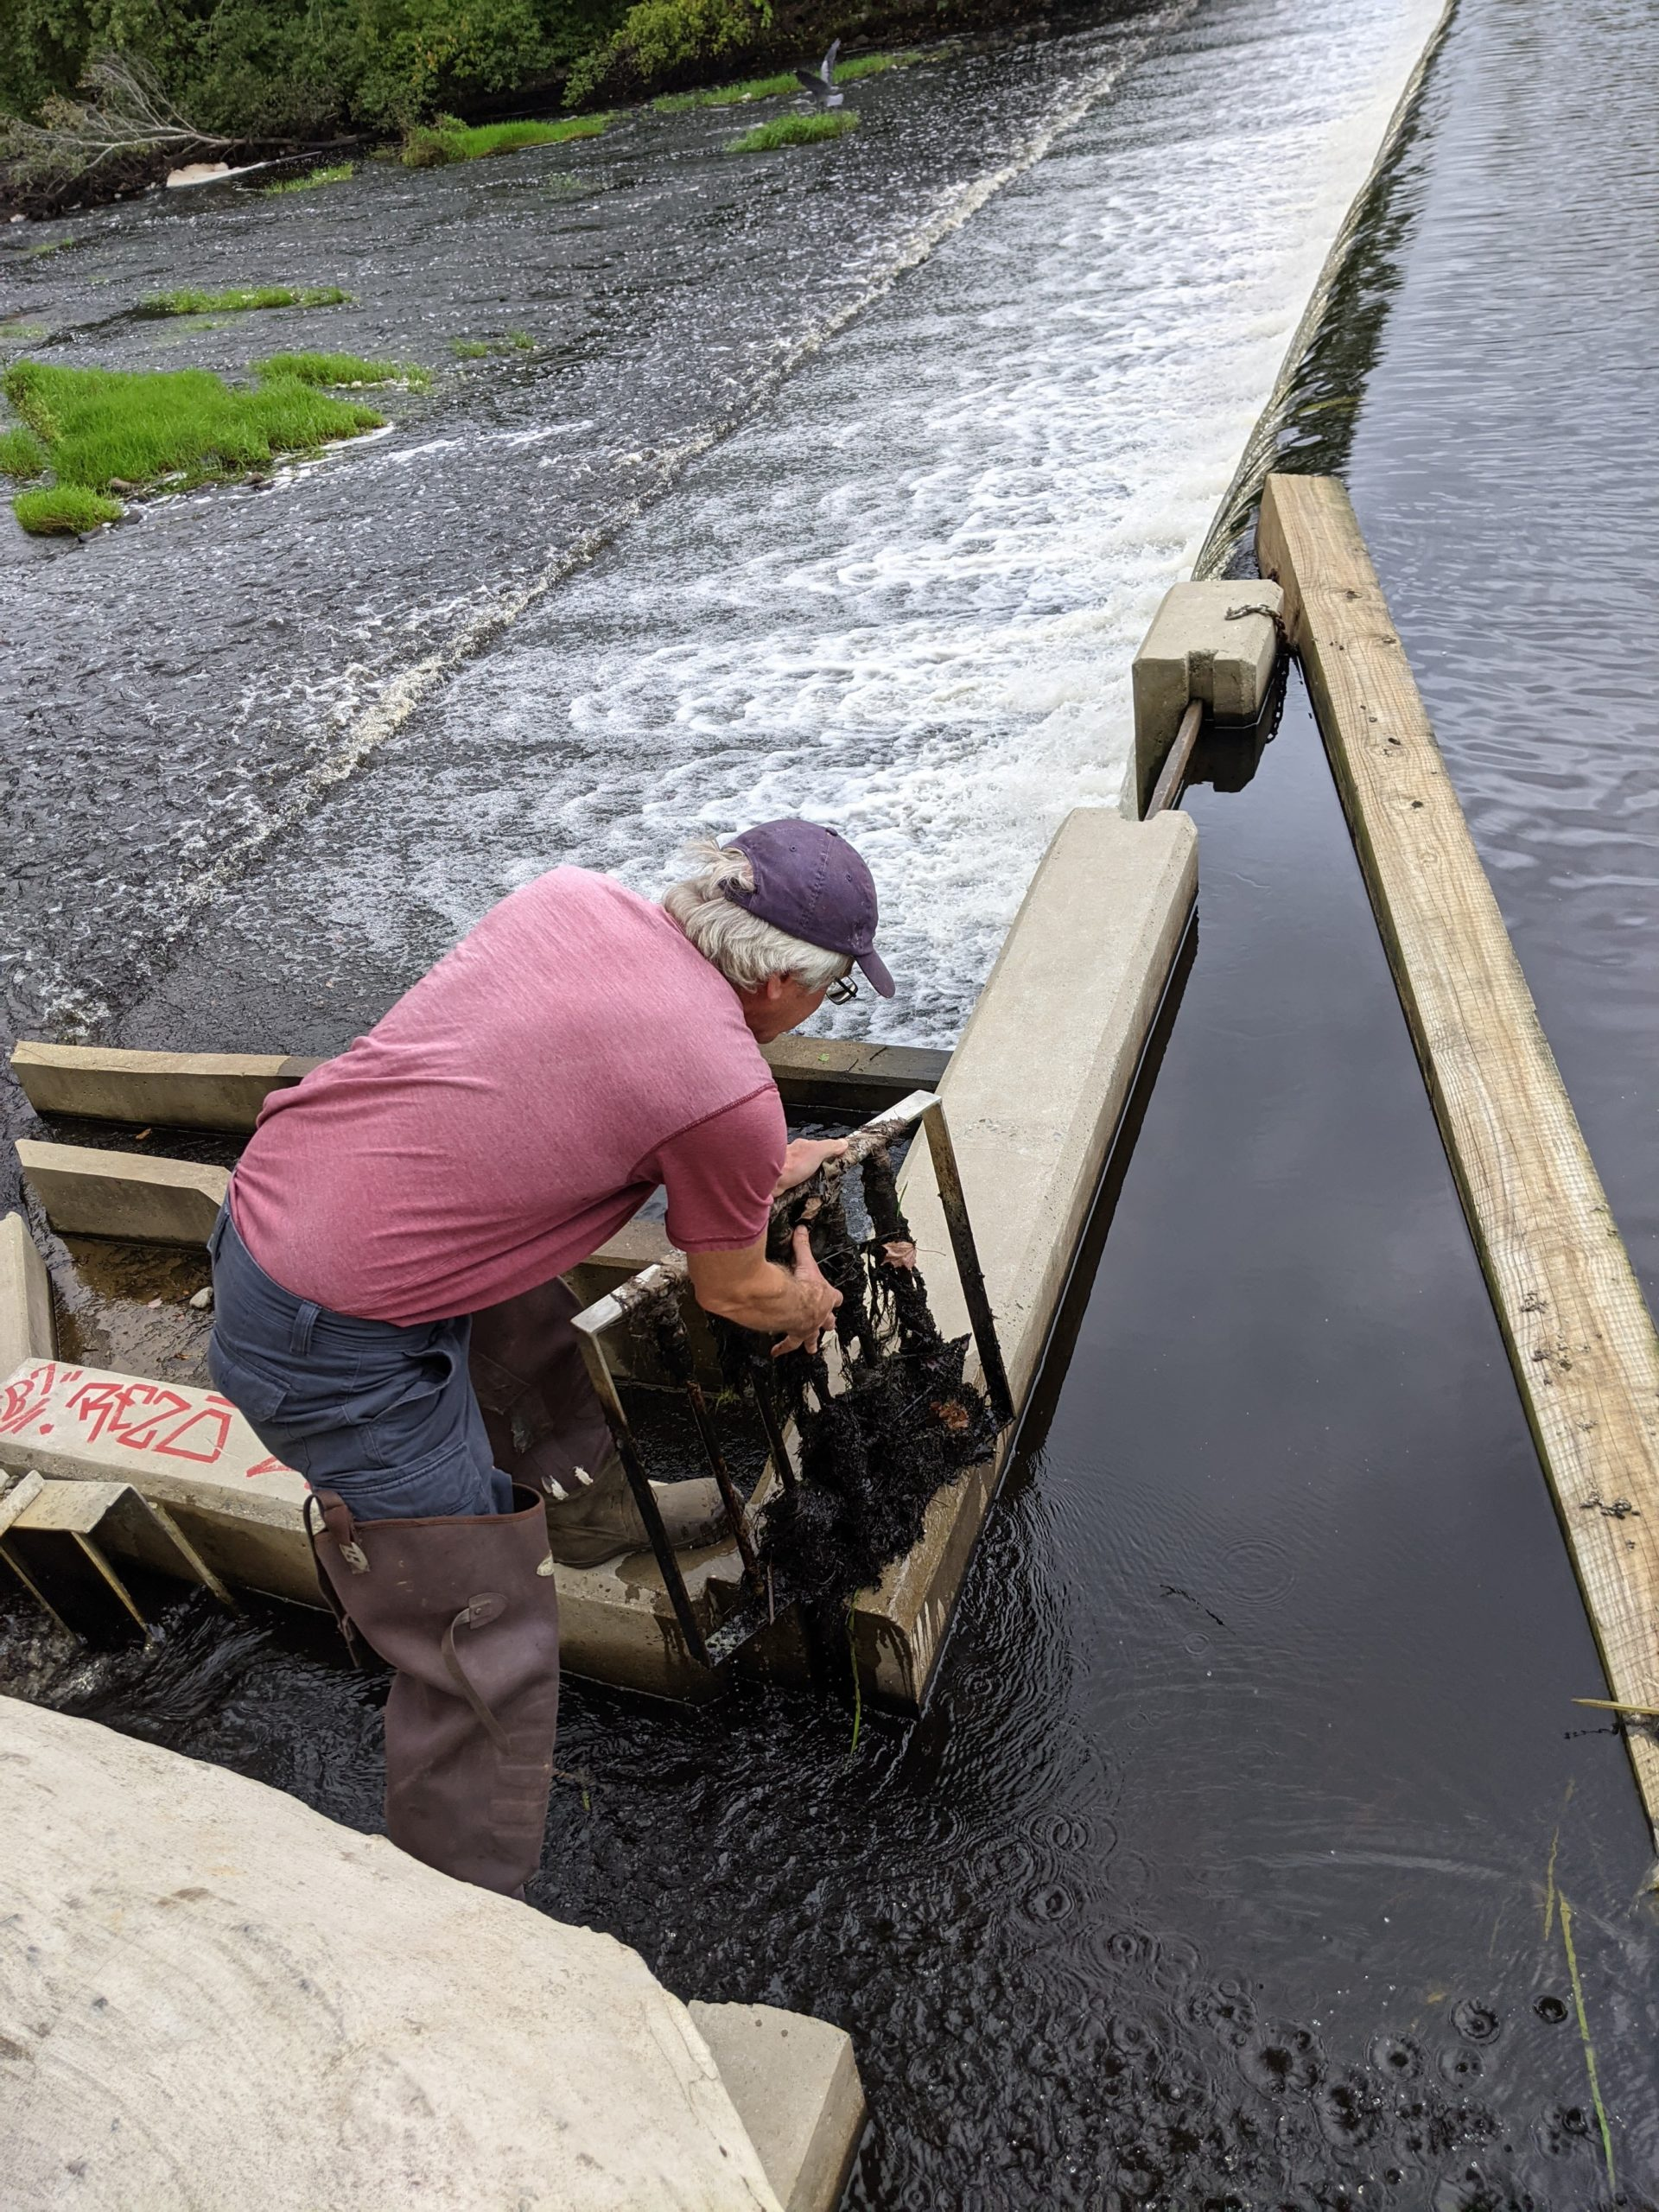 Brad Chase cleans the grate at the top of the fish ladder.